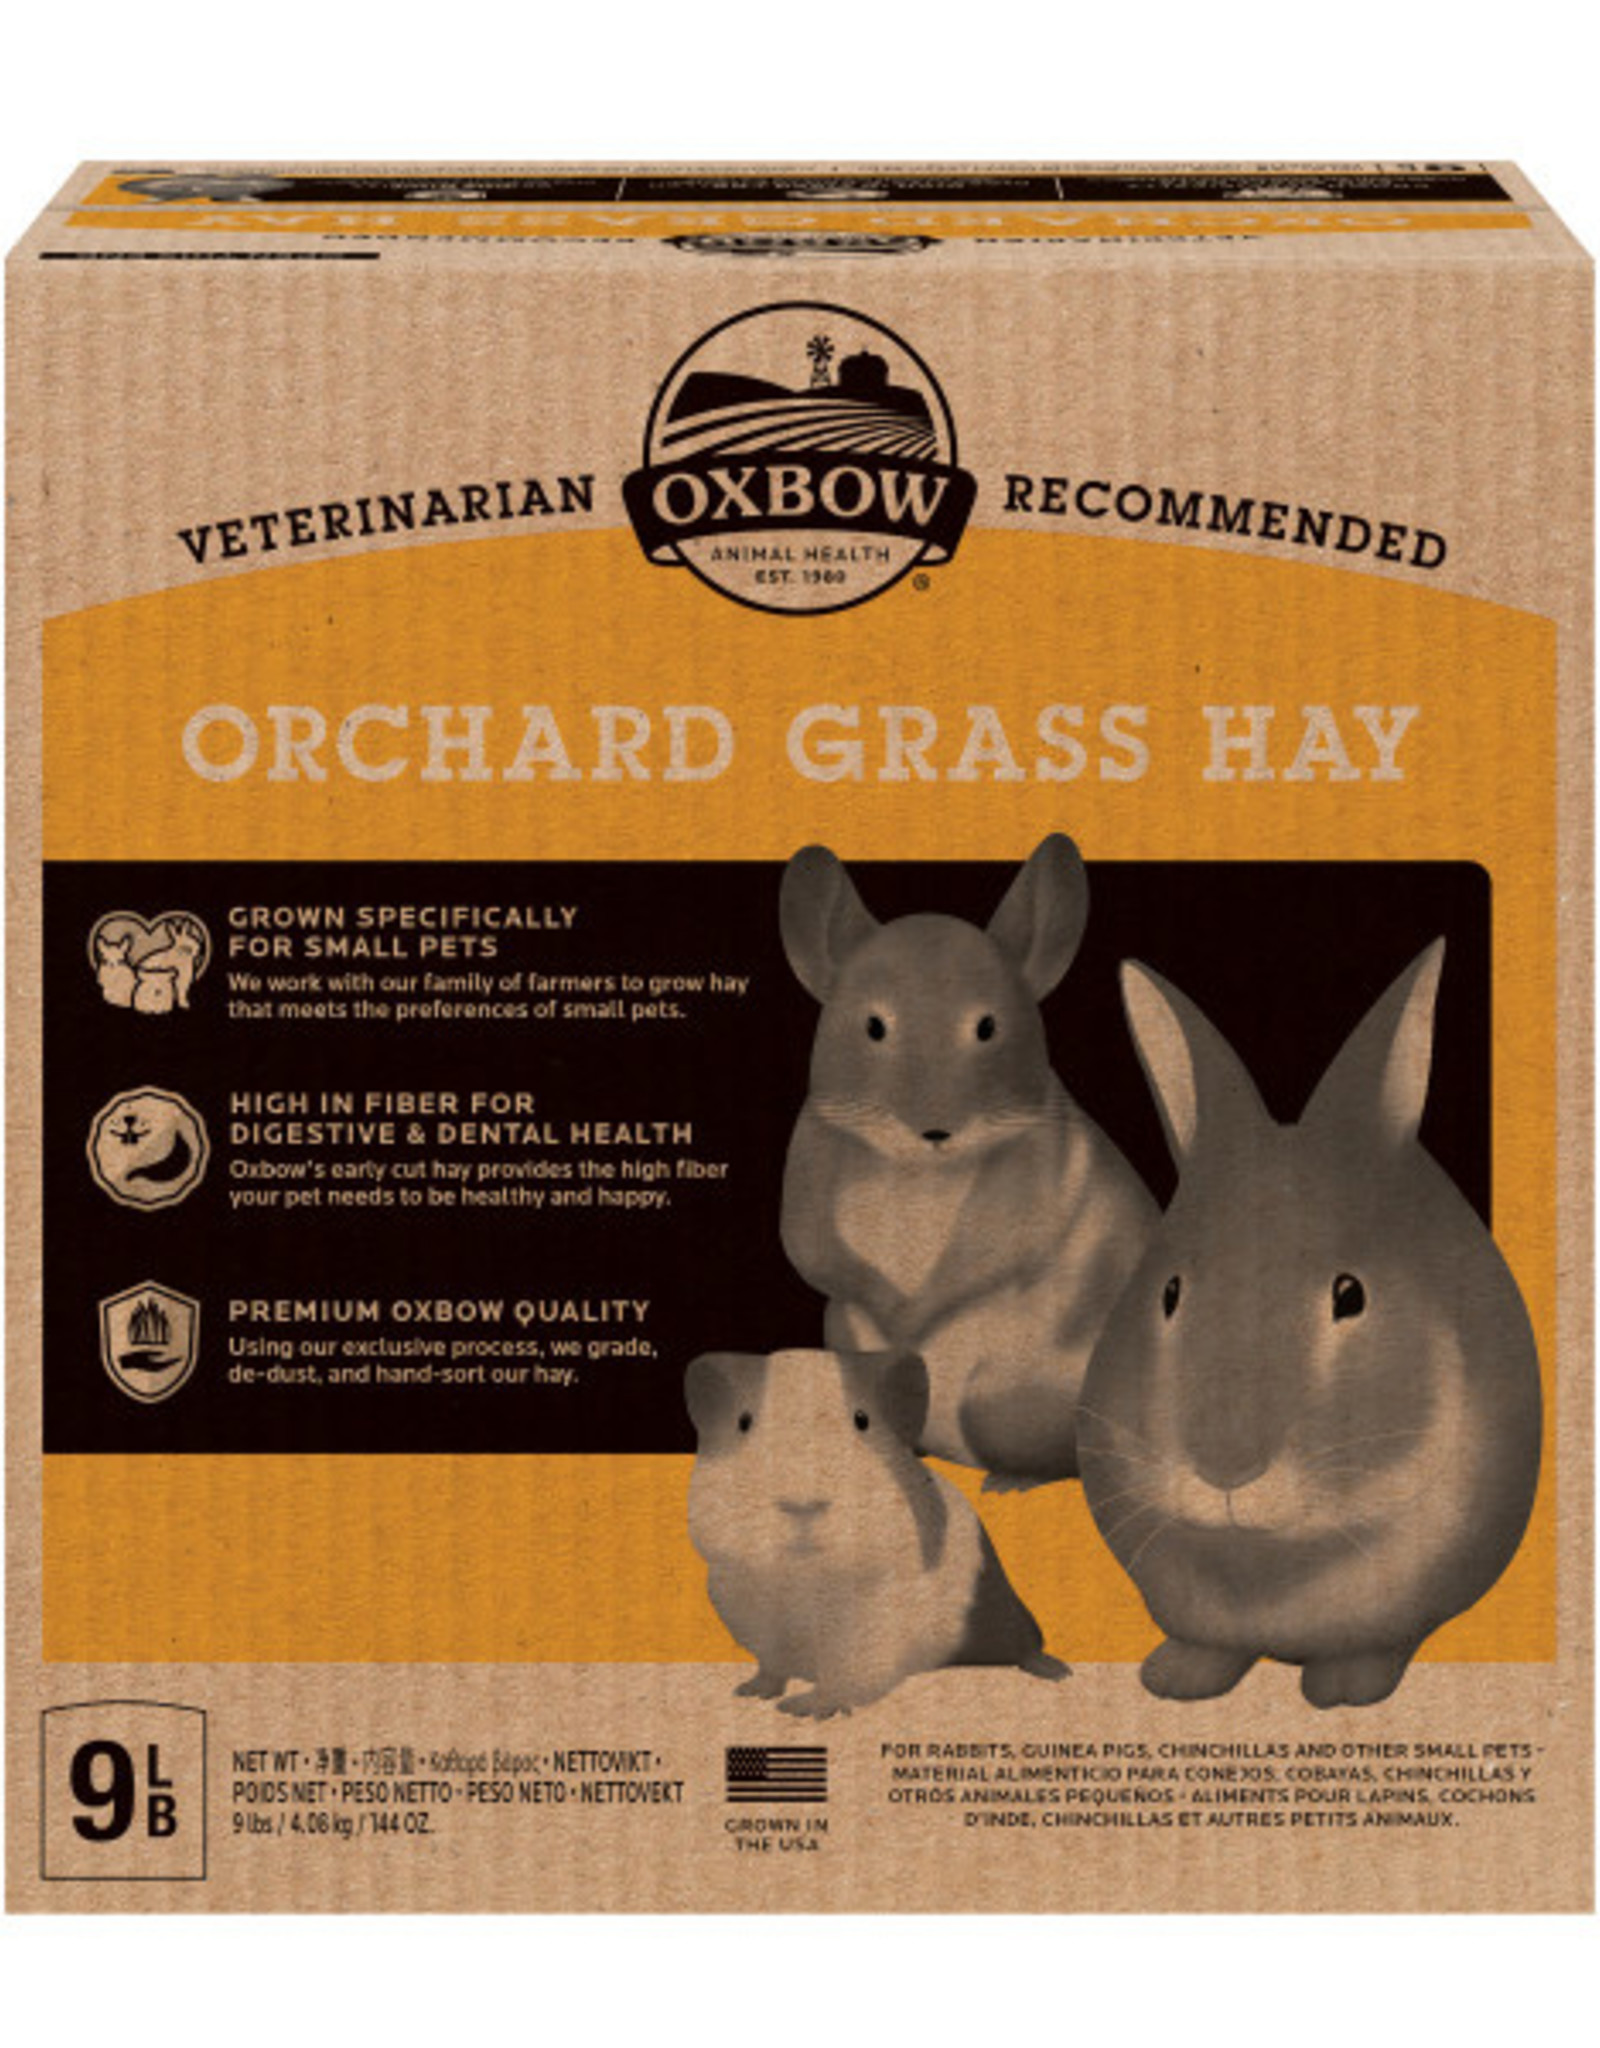 Oxbow Orchard Grass Hay - 9LB